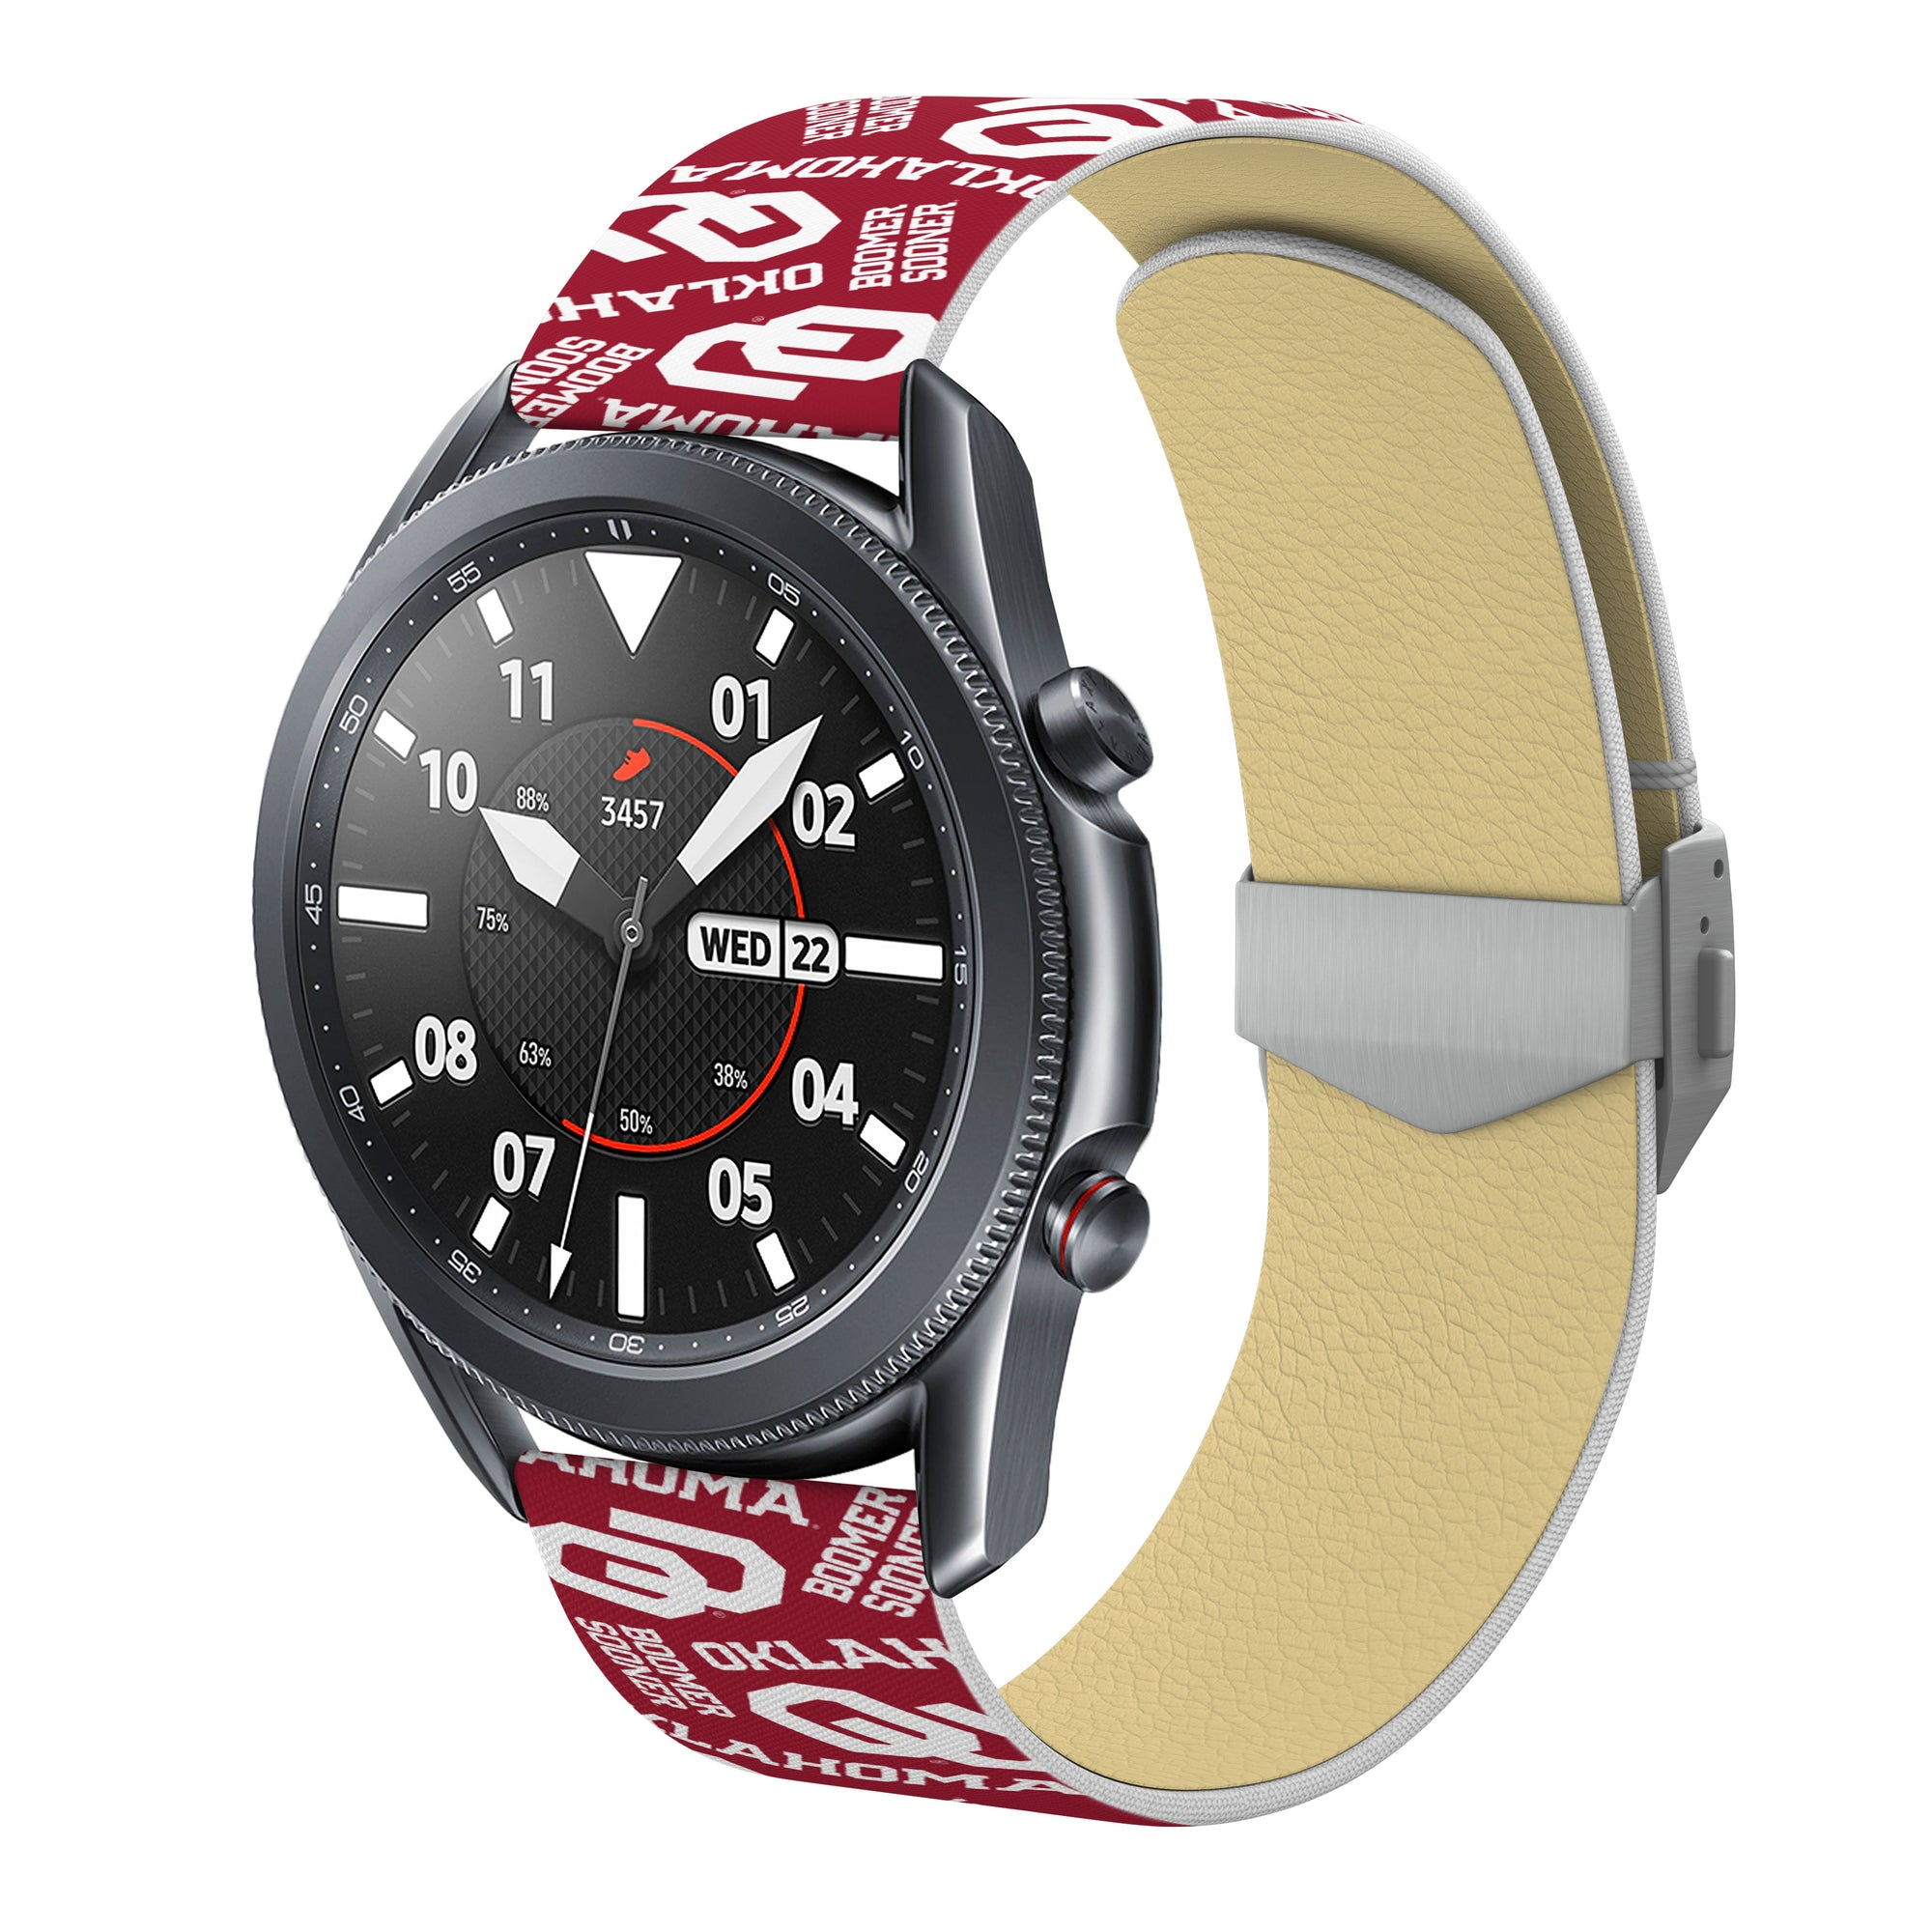 Oklahoma Sooners Full Print Quick Change Watch Band With Engraved Buckle - AffinityBands